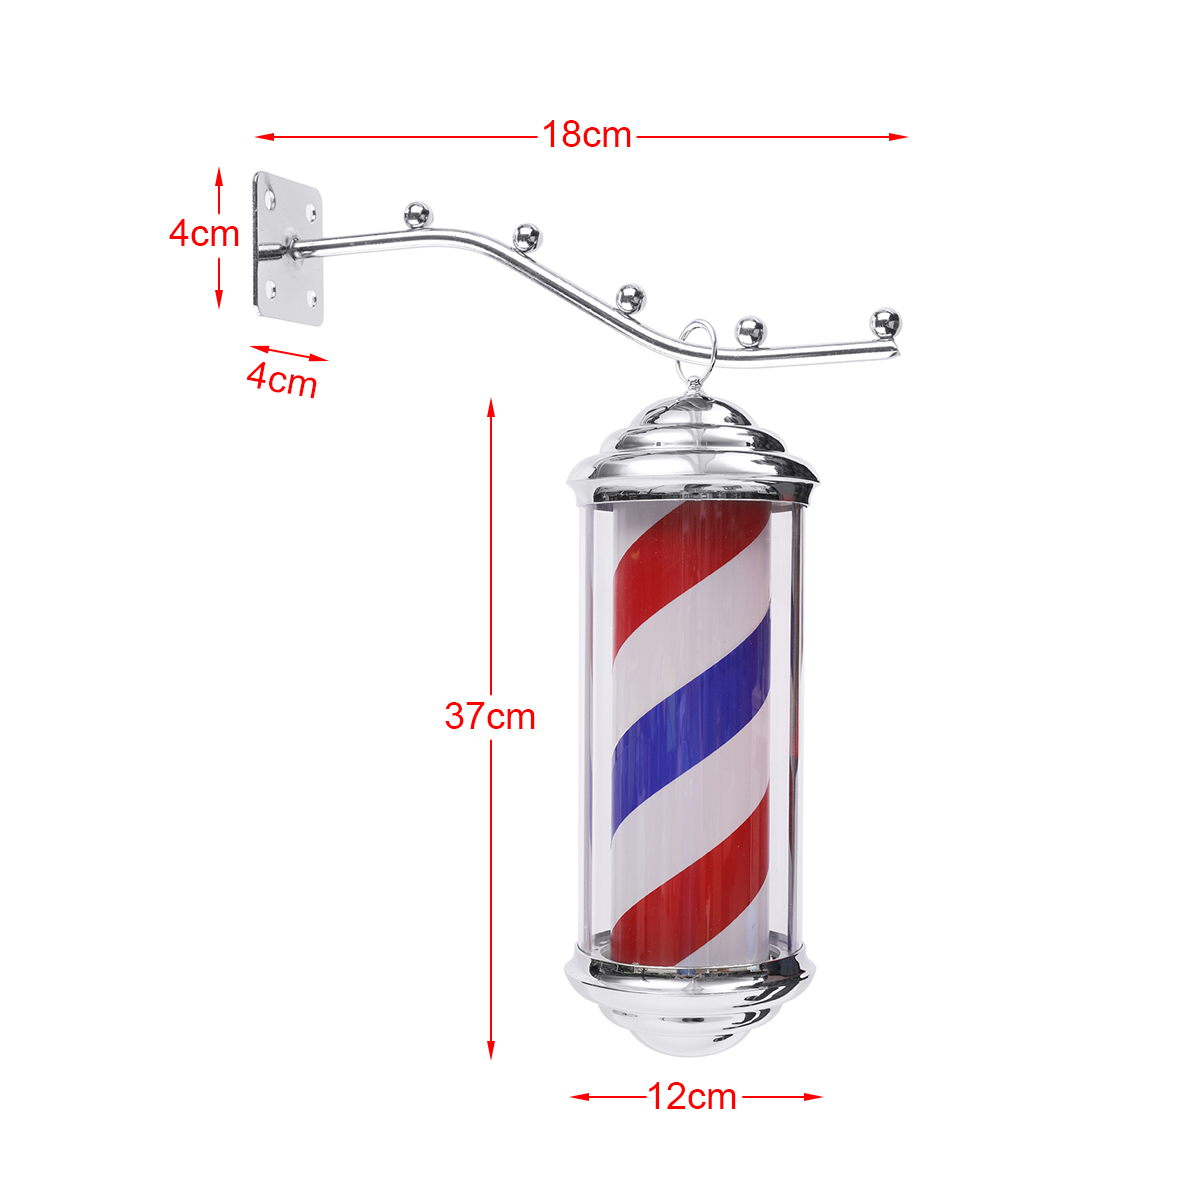 1Pc 35*15*15cm Metal Barber Shop Light Red White Blue Stripes Rotating LED Light Hairdressing Salon Outdoor Sign With 1.5m Cord-in Styling Accessories from Beauty & Health    3